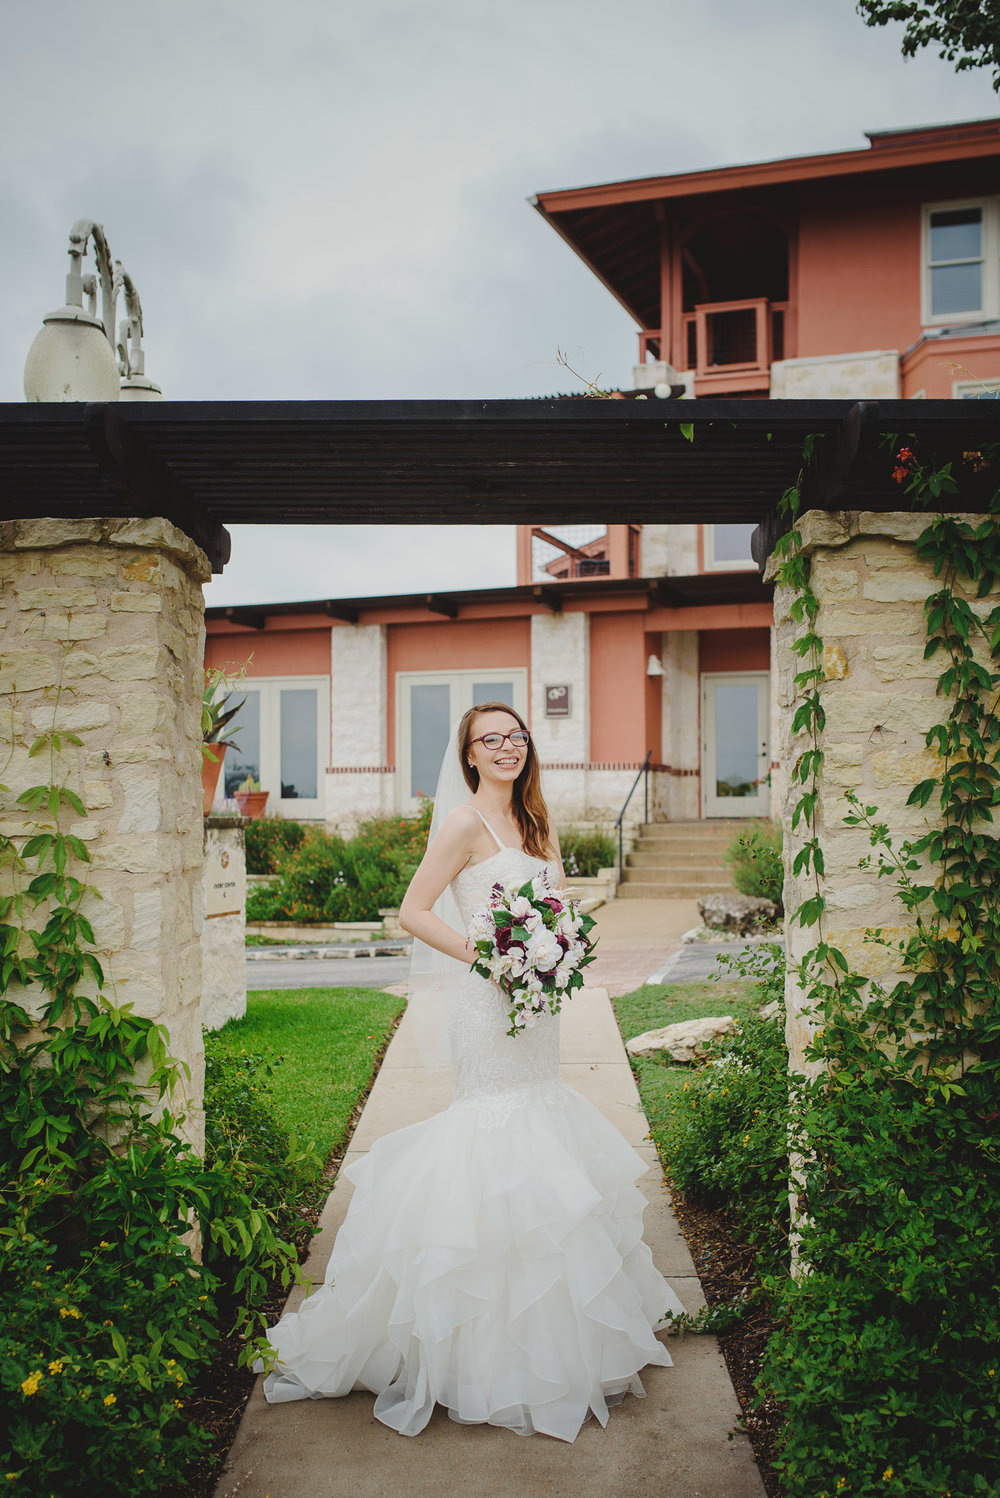 Austin-Texas-Wedding-Vintage-Villas-0048.jpg